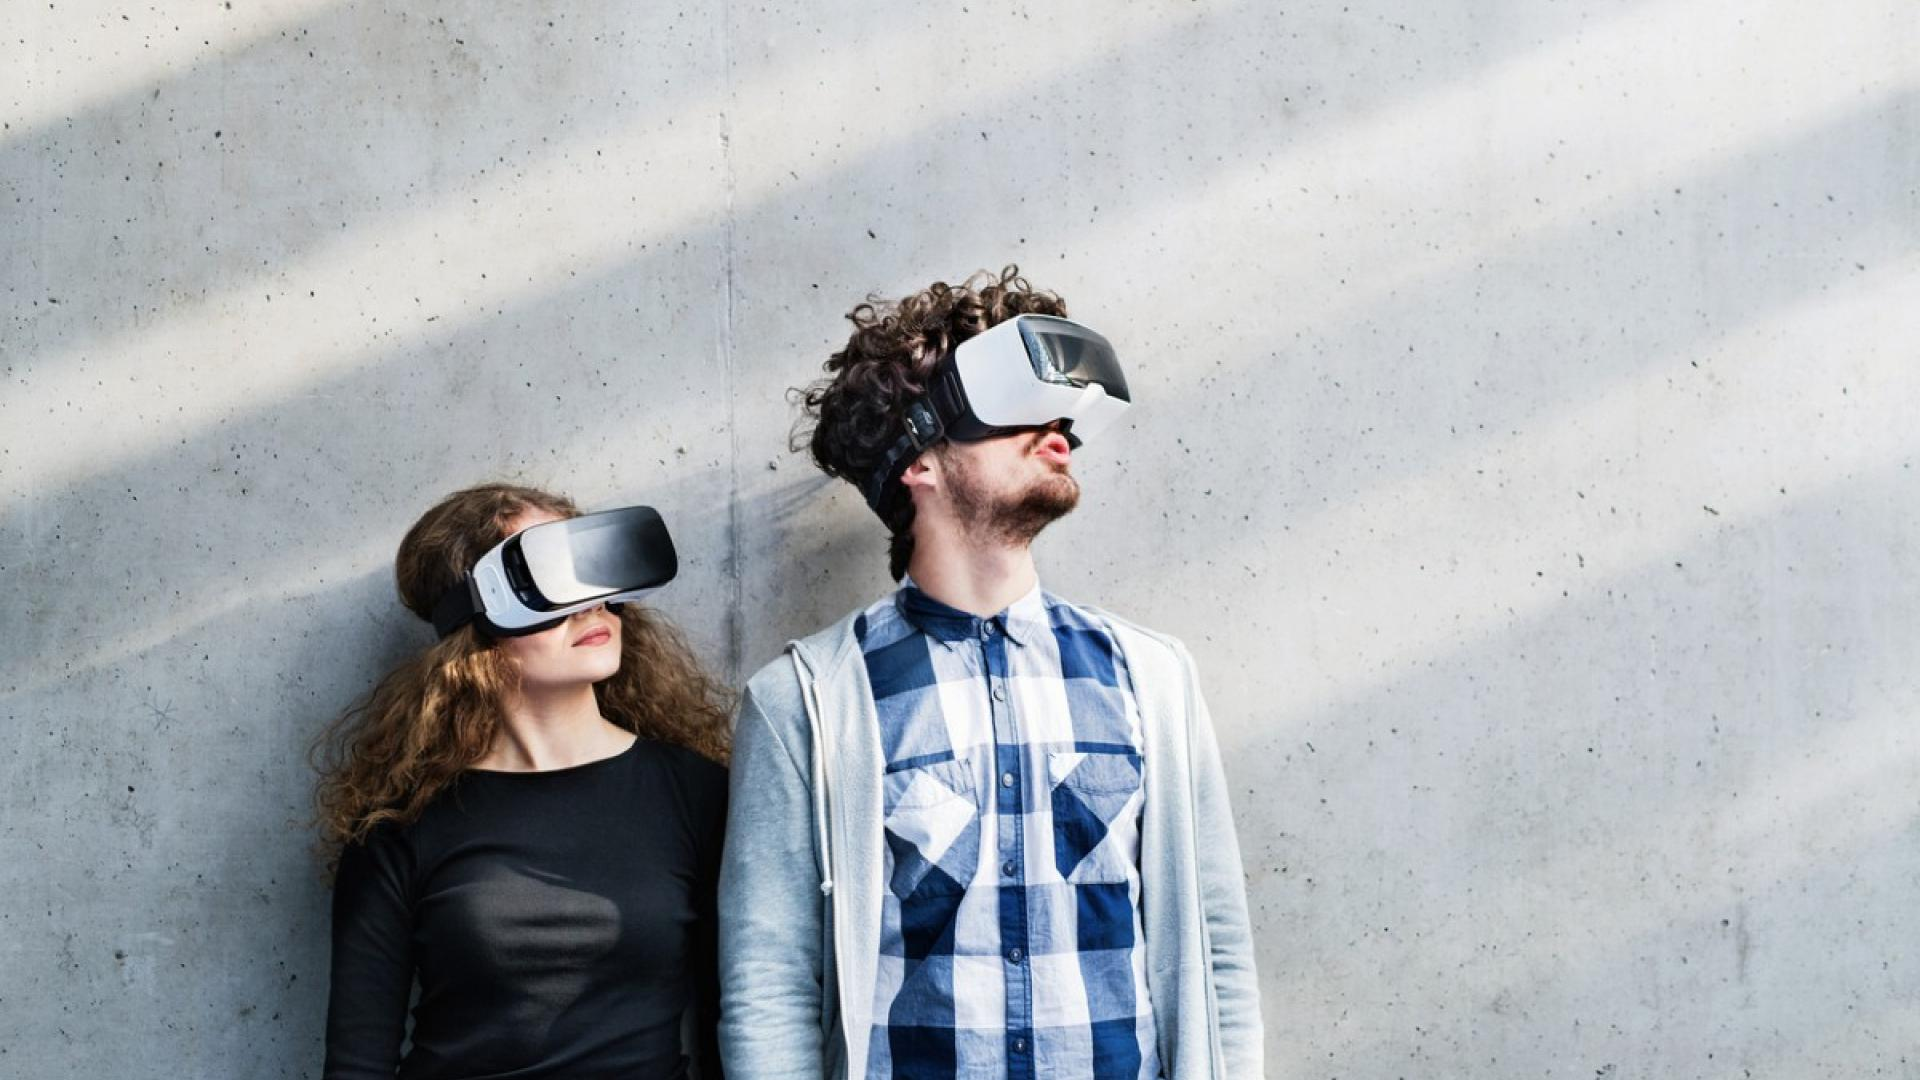 Could a VR headset help you better understand a relative with Alzheimer's?